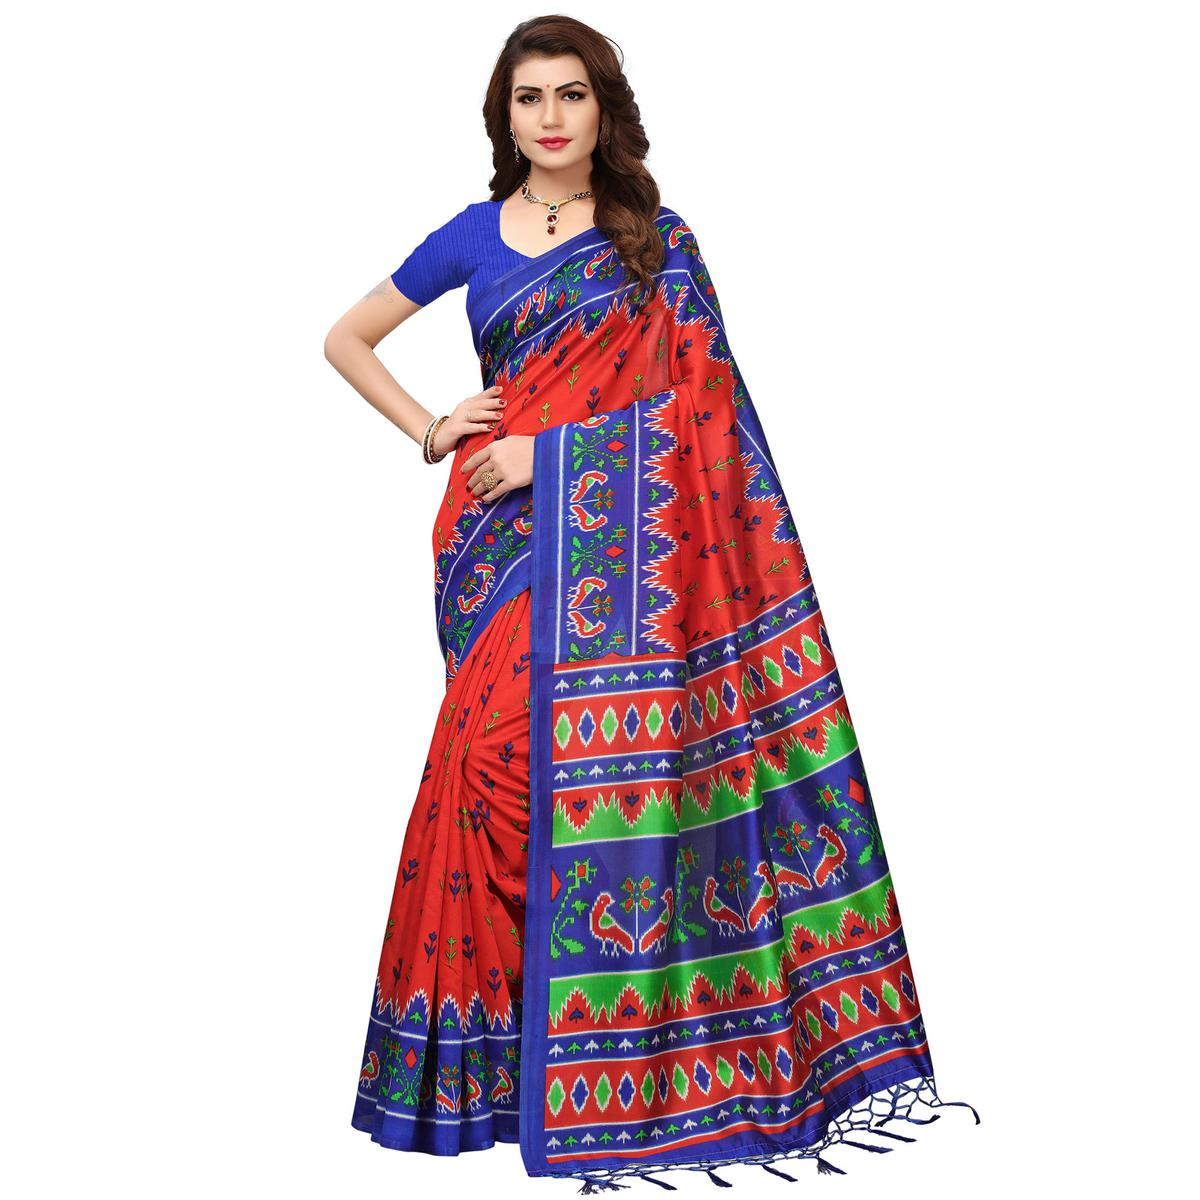 Mesmeric Orange-Blue Colored Printed Festive Wear Mysore Art Silk Saree